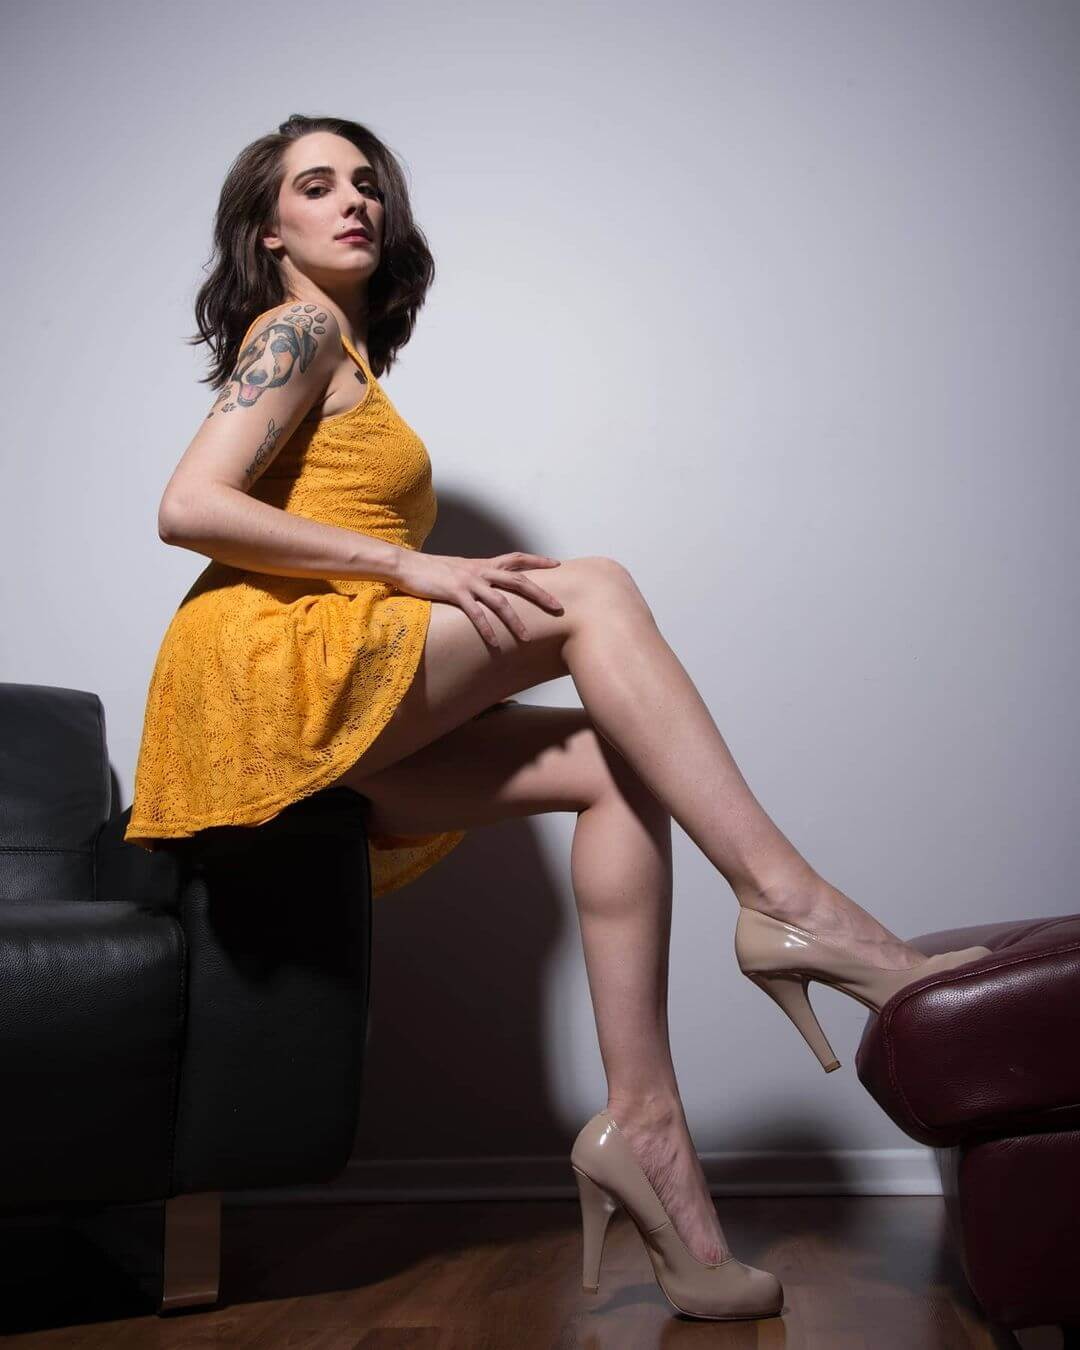 Beautiful Canadian inked model Ashley Stevens @ashley.s.modeling wearing a light orange dress and high heels shot from below showing an upstart view of her long sexy legs